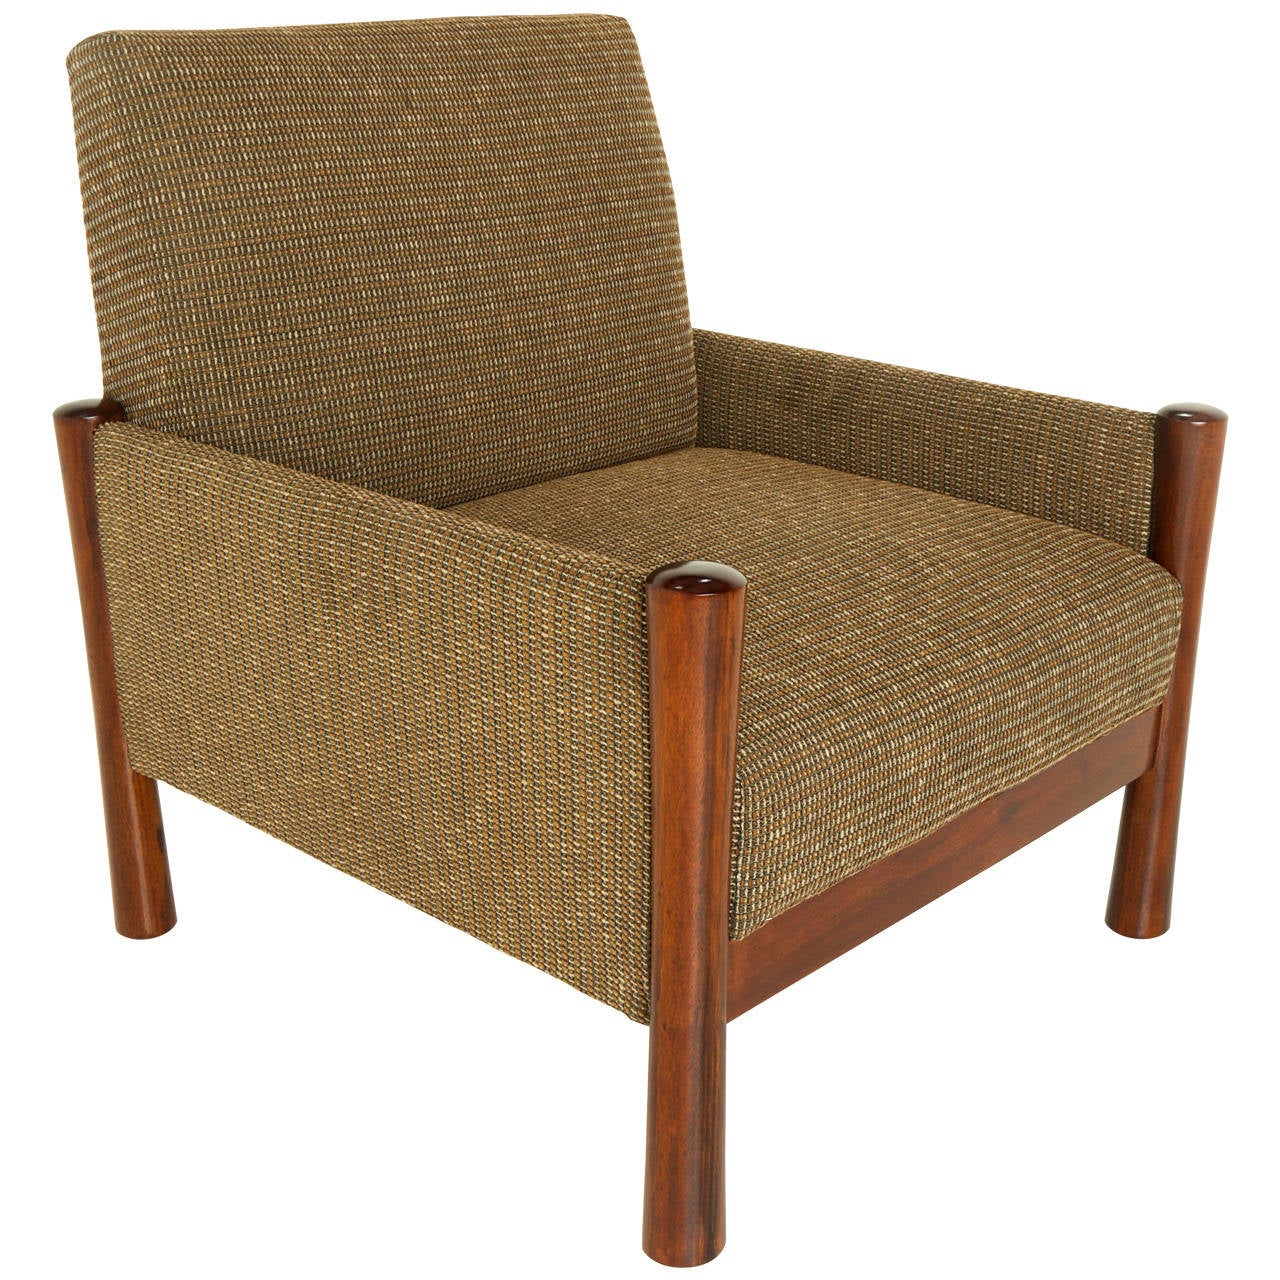 upholstered chairs with wooden arms retro dining chair mid century brazilian sculptural wood legs and tweed